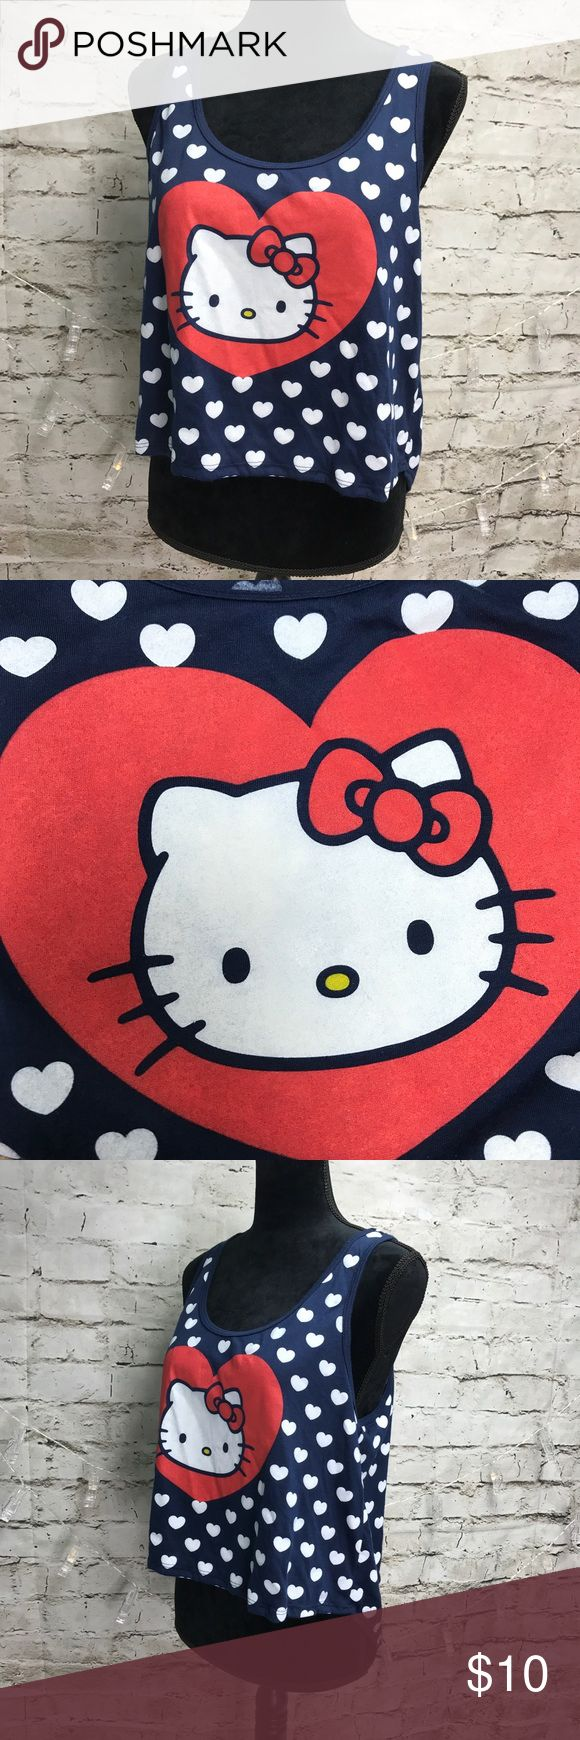 """Hello Kitty By Sanrio Tank Top SZ Large Hello Kitty by Sanrio size large. Navy blue with white hearts featuring Hello Kitty on the front. Great preowned condition. Please see the pictures for more details. Measurements from top of bust line to bottom is 12"""", arm pit to arm pit 18"""". Thank you for looking and I invite you to check out the rest of my closet for more great finds! Save 15% by bundling 2 or more items! Hello Kitty by Sanrio Tops Tank Tops"""